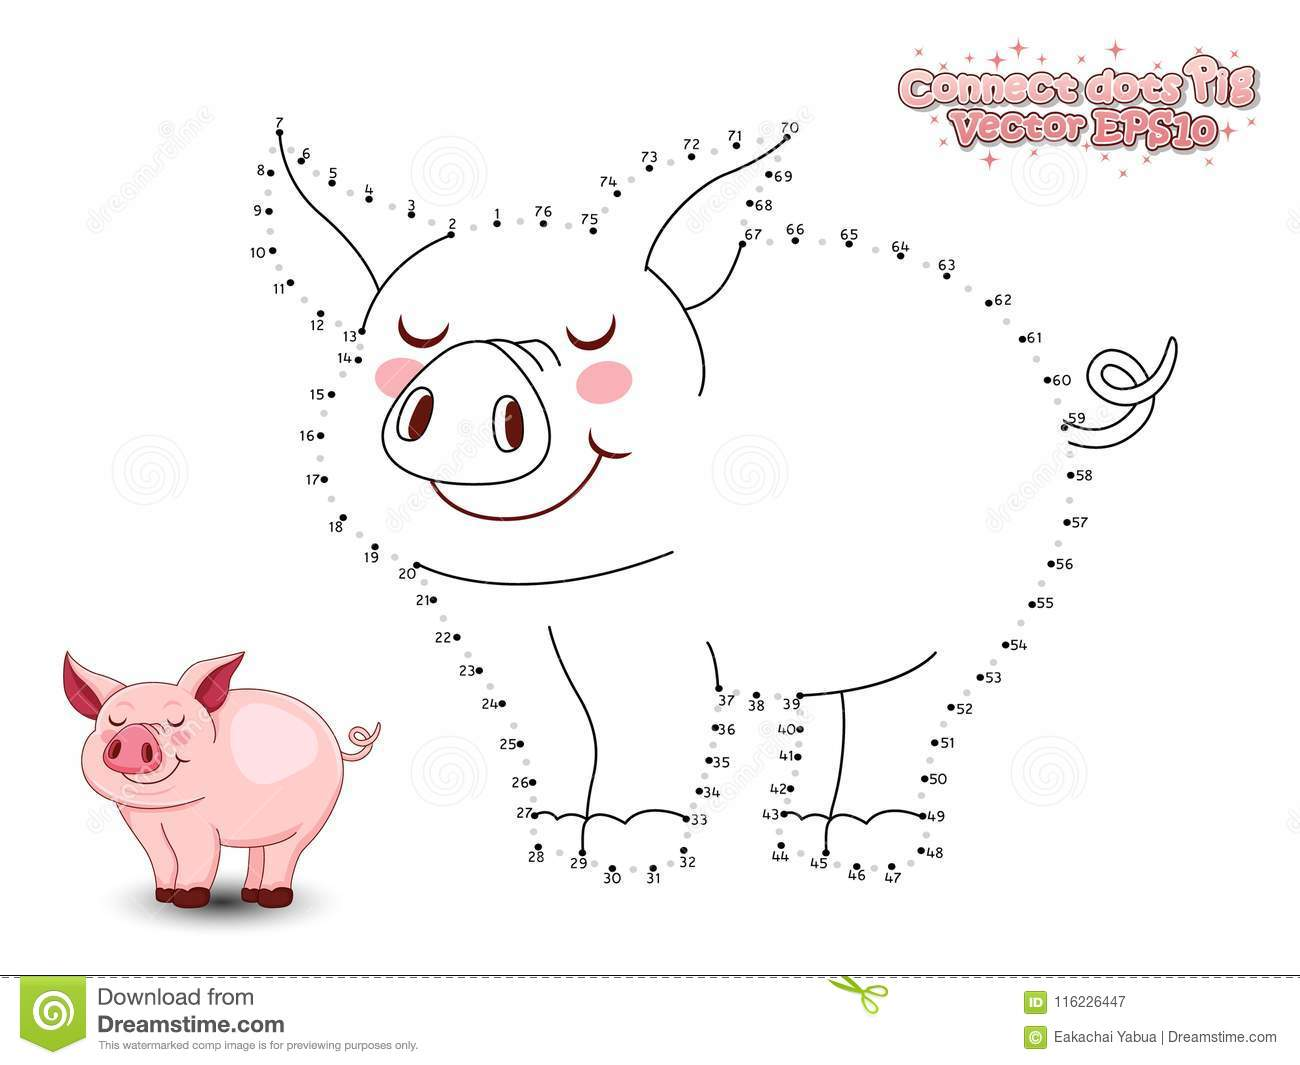 Reliez Dots Draw Cute Cartoon Pig et le colorez GA éducatif